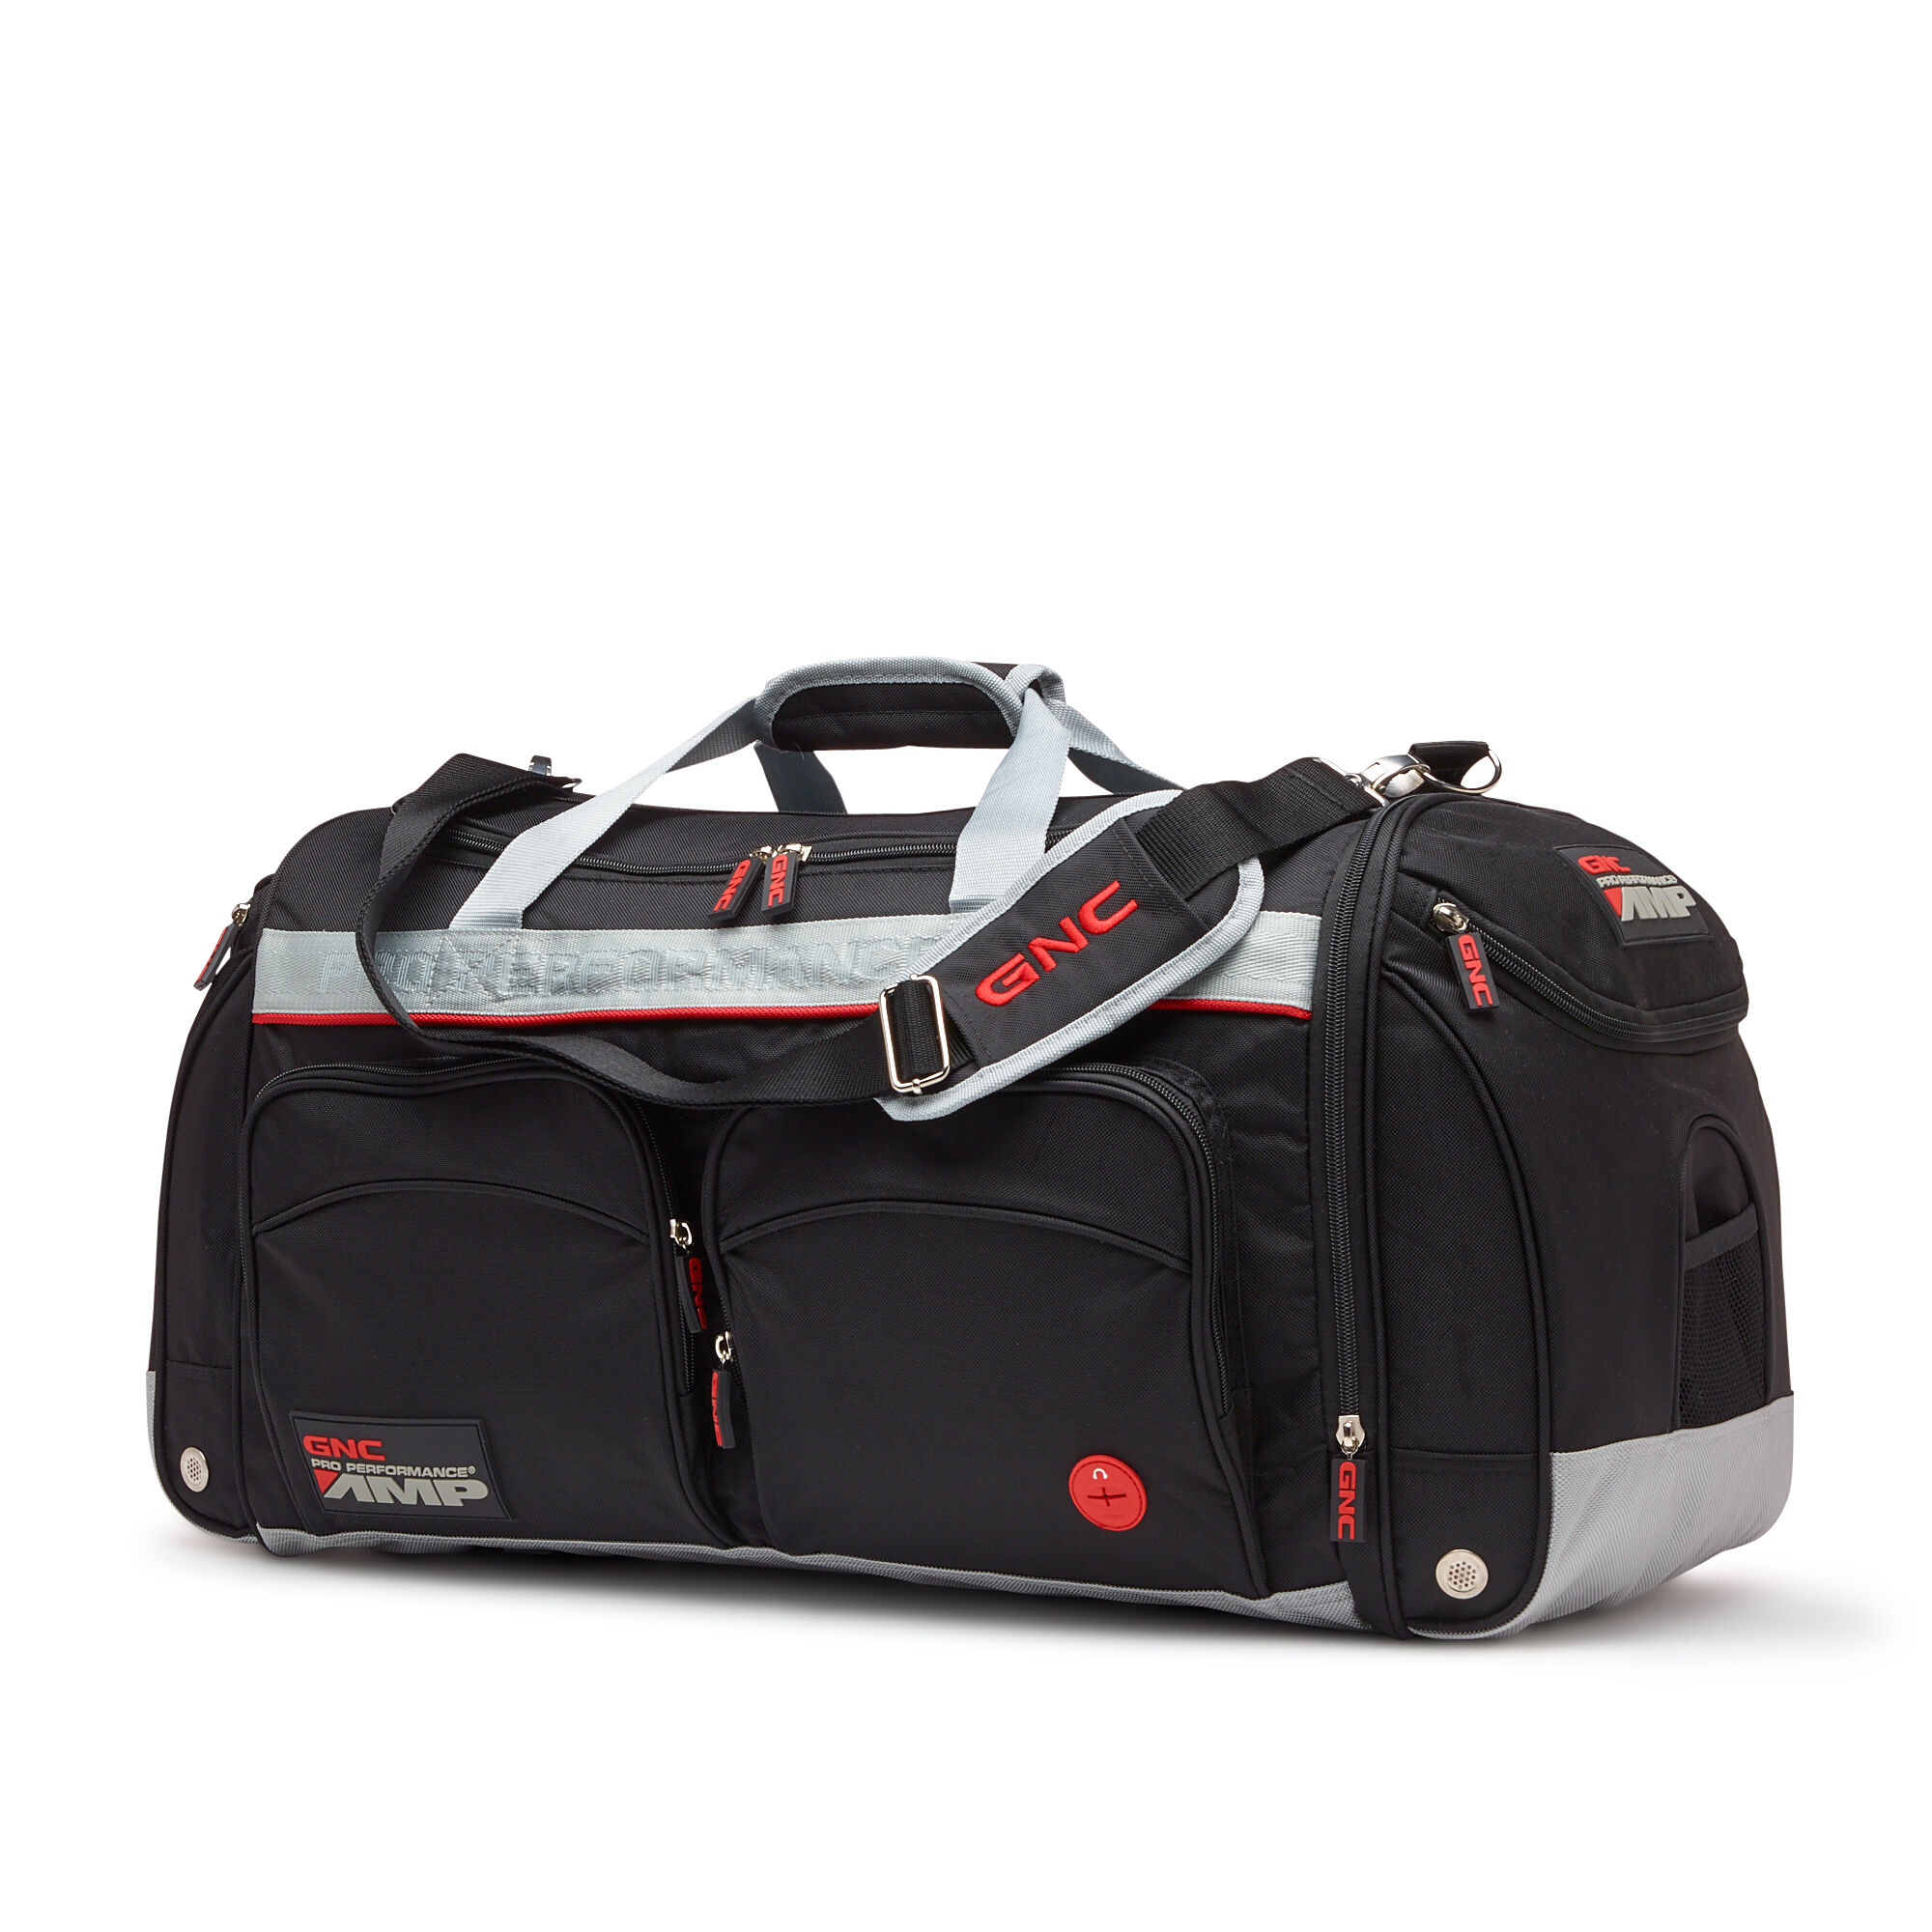 Ultra Deluxe Gym Bag